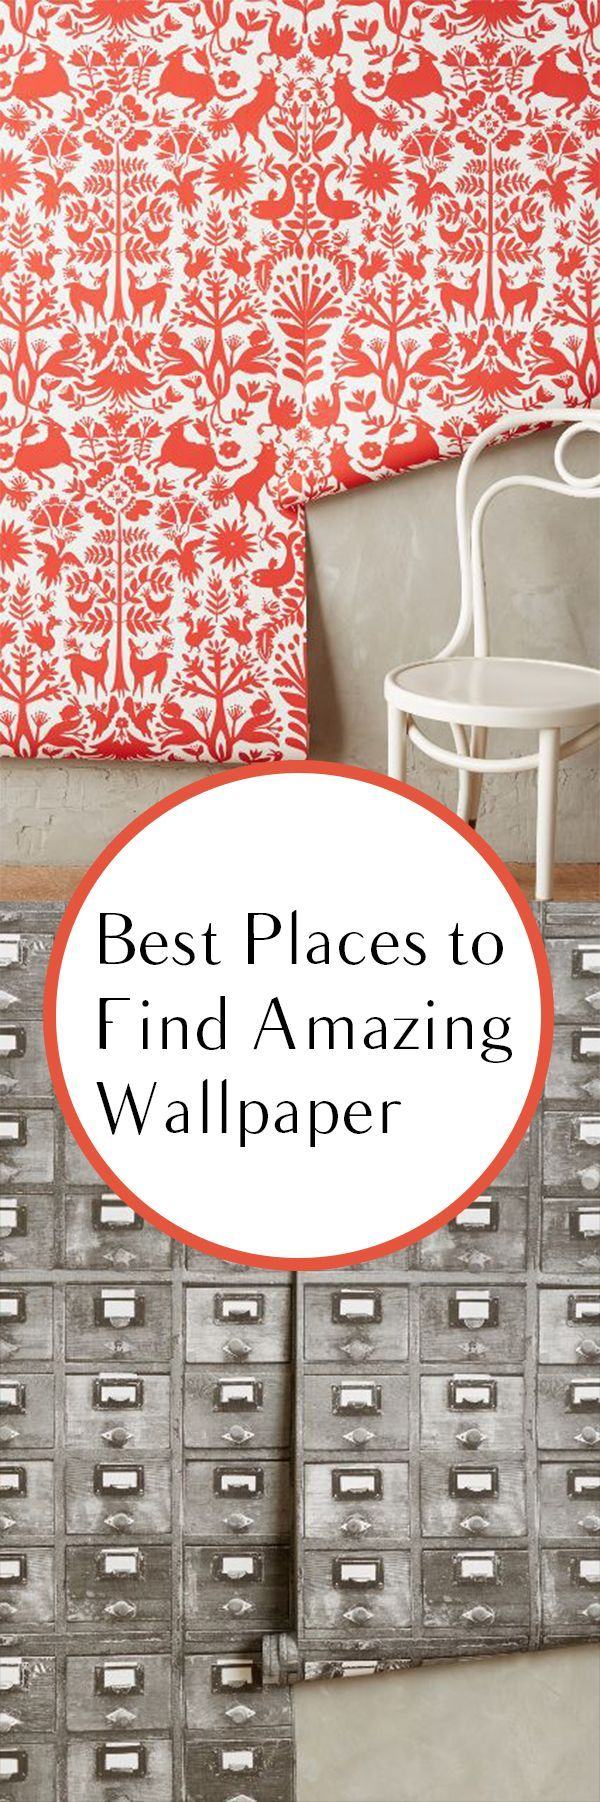 17 best ideas about wallpaper for home on pinterest for Most popular wallpaper designs